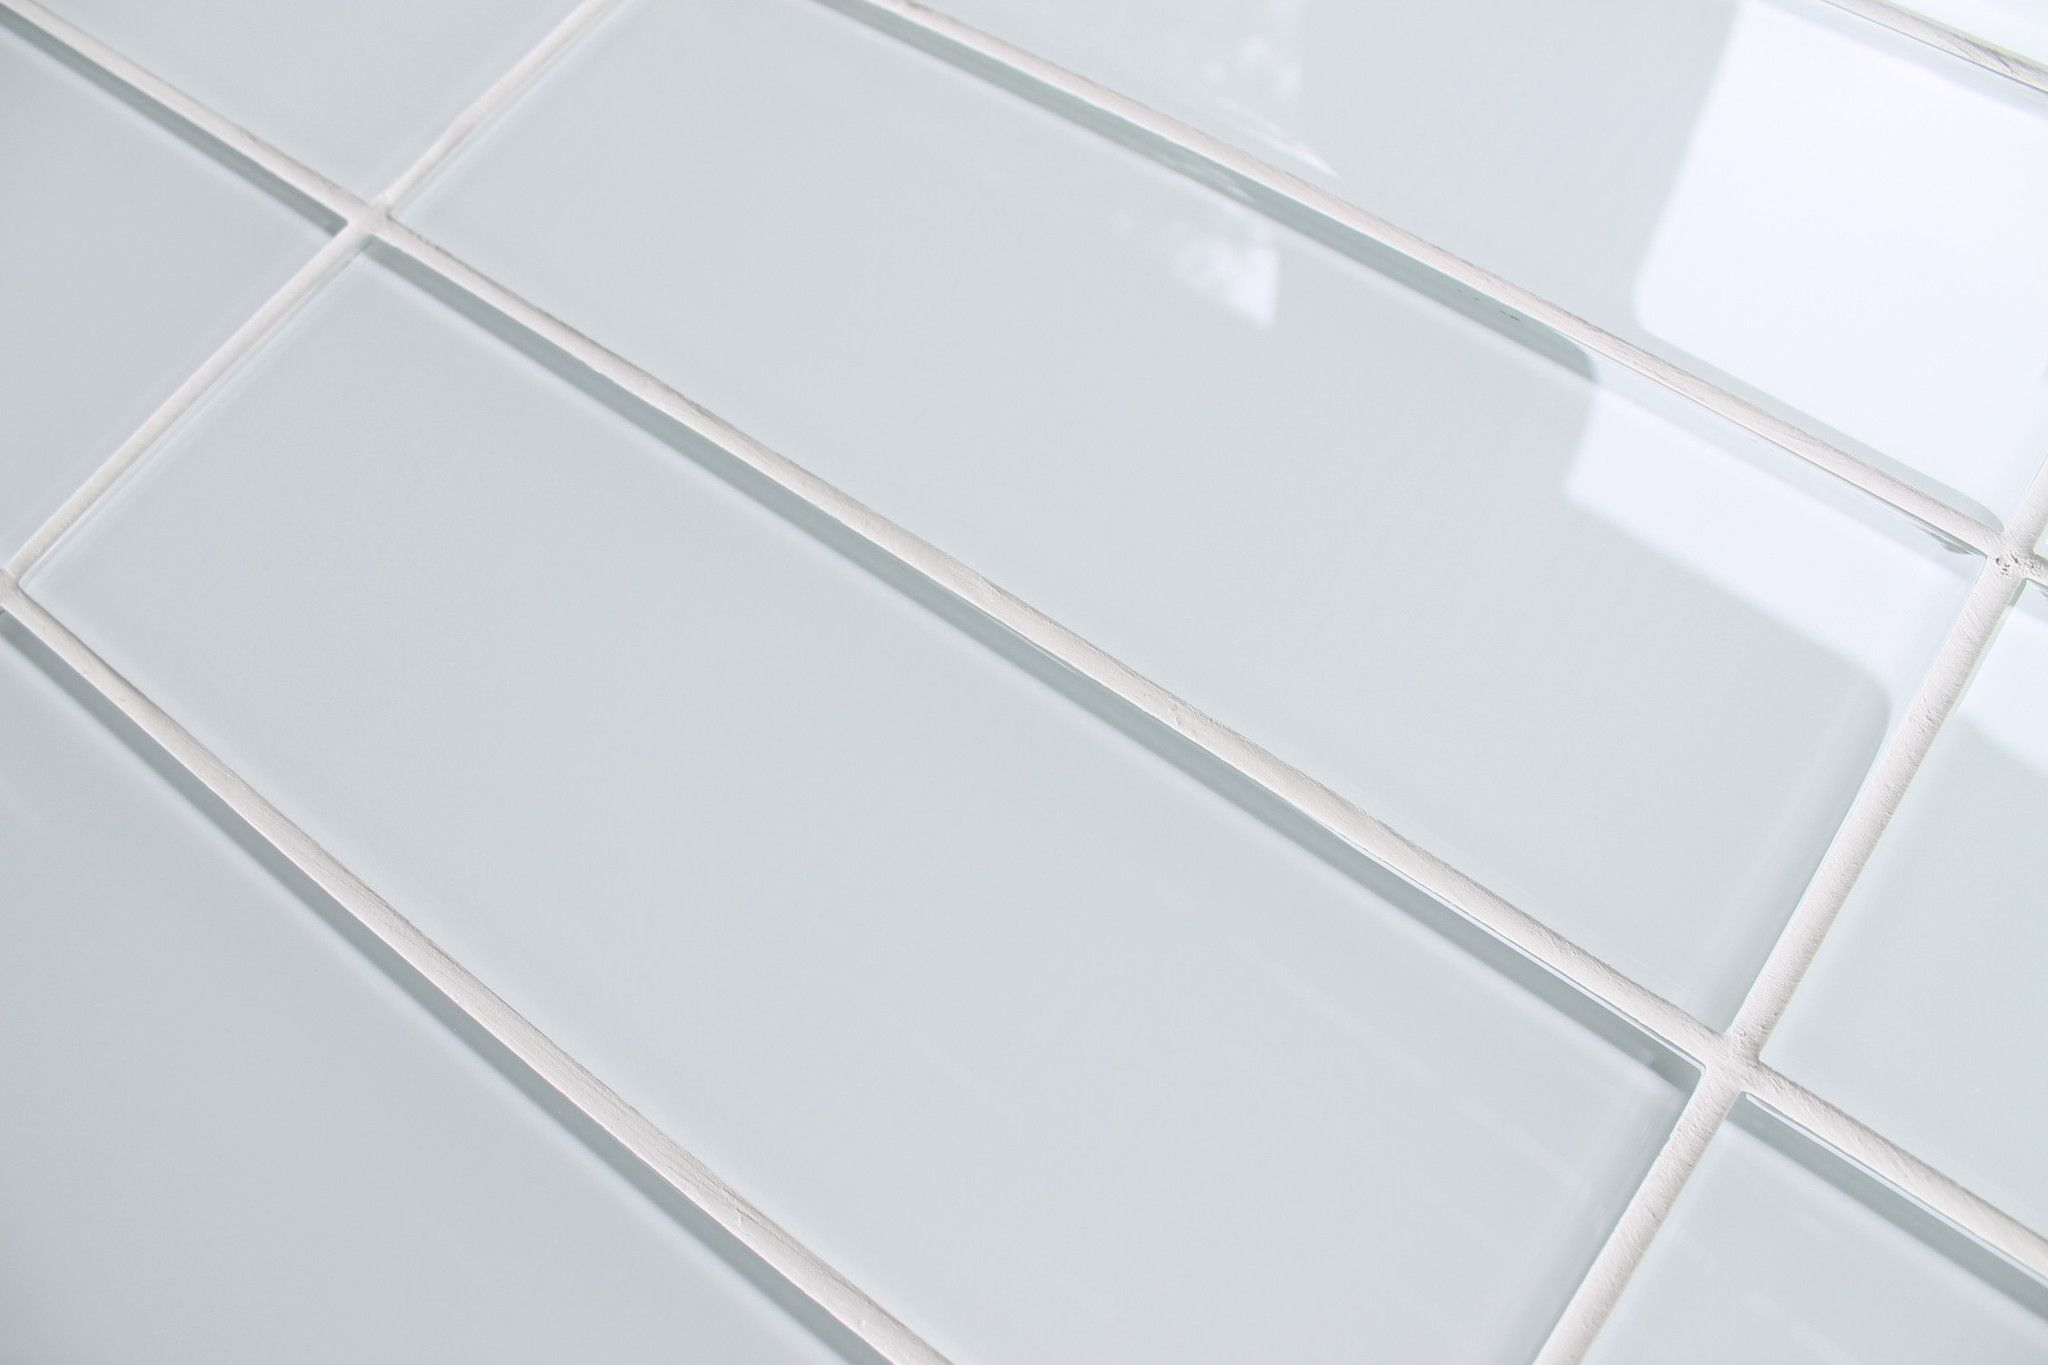 White glass subway tile this could be  more modern take on traditional ceramic tiles  think would prefer larger format like  or  also